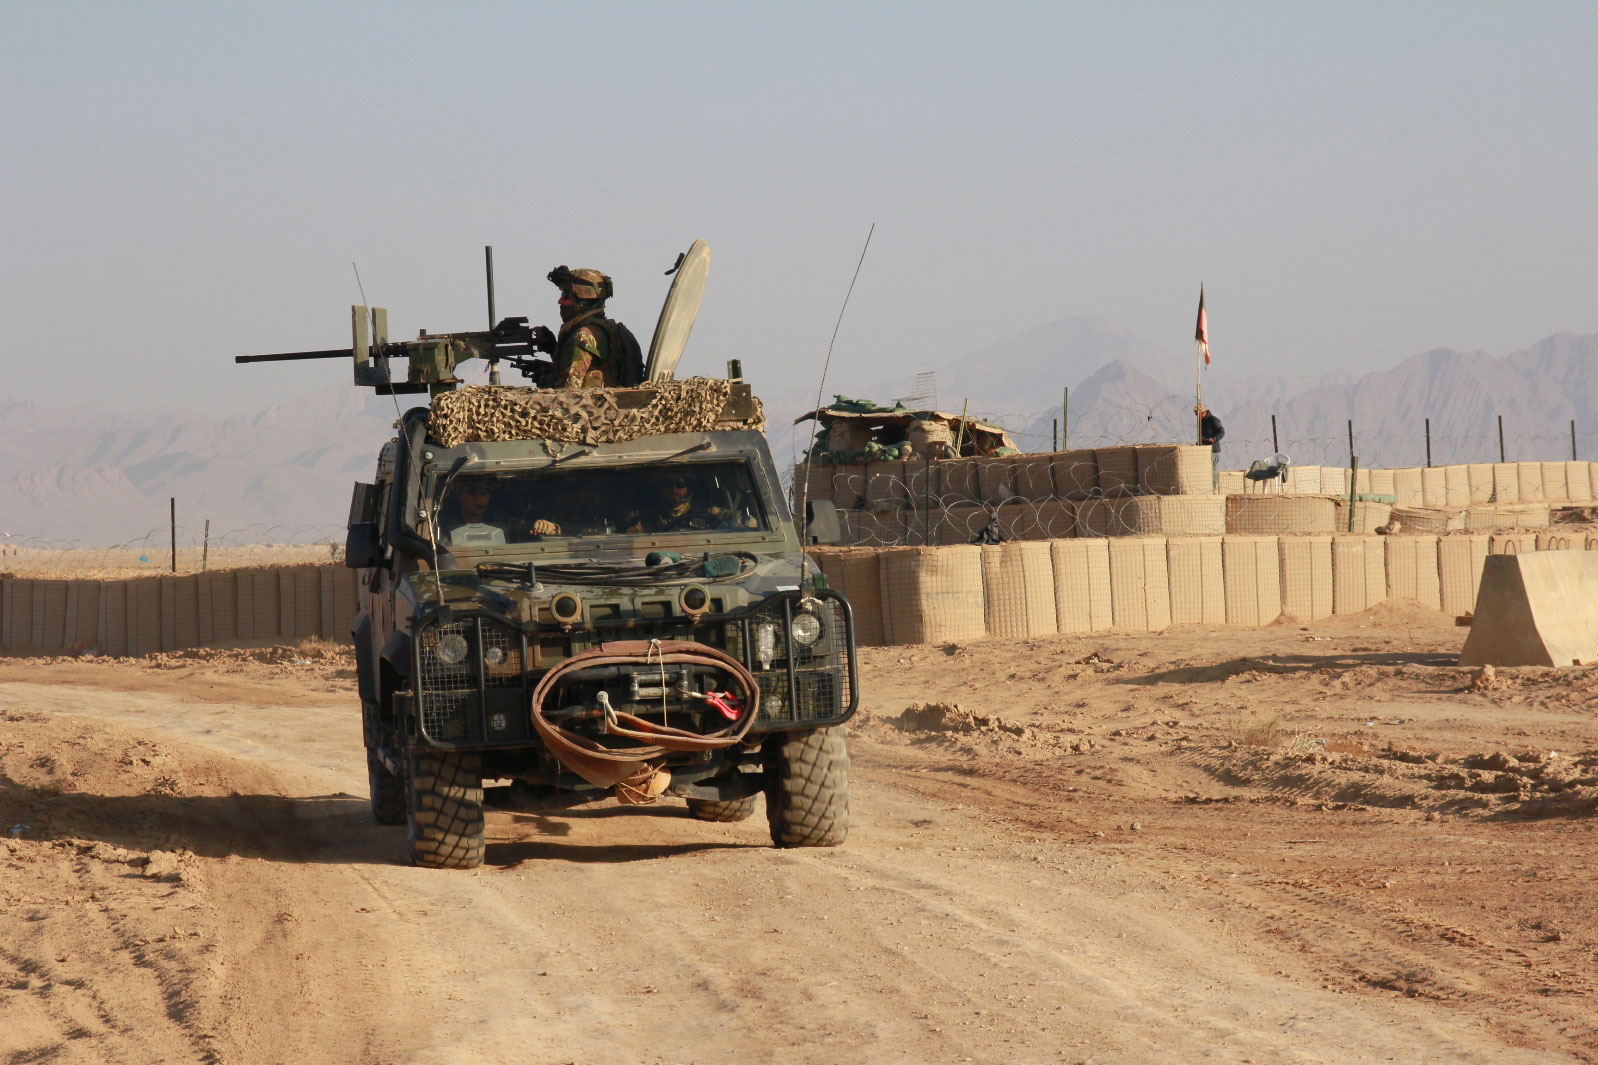 Italian+troops+in+Afghanistan+International+Security+Assistance+Force+%2528ISAF%2529+North+Atlantic+Treaty+Organization+or+NATO+Taliban+War+Terrorism+patrolling+fighting+conflict+soldiers+army++%25283%2529.jpg